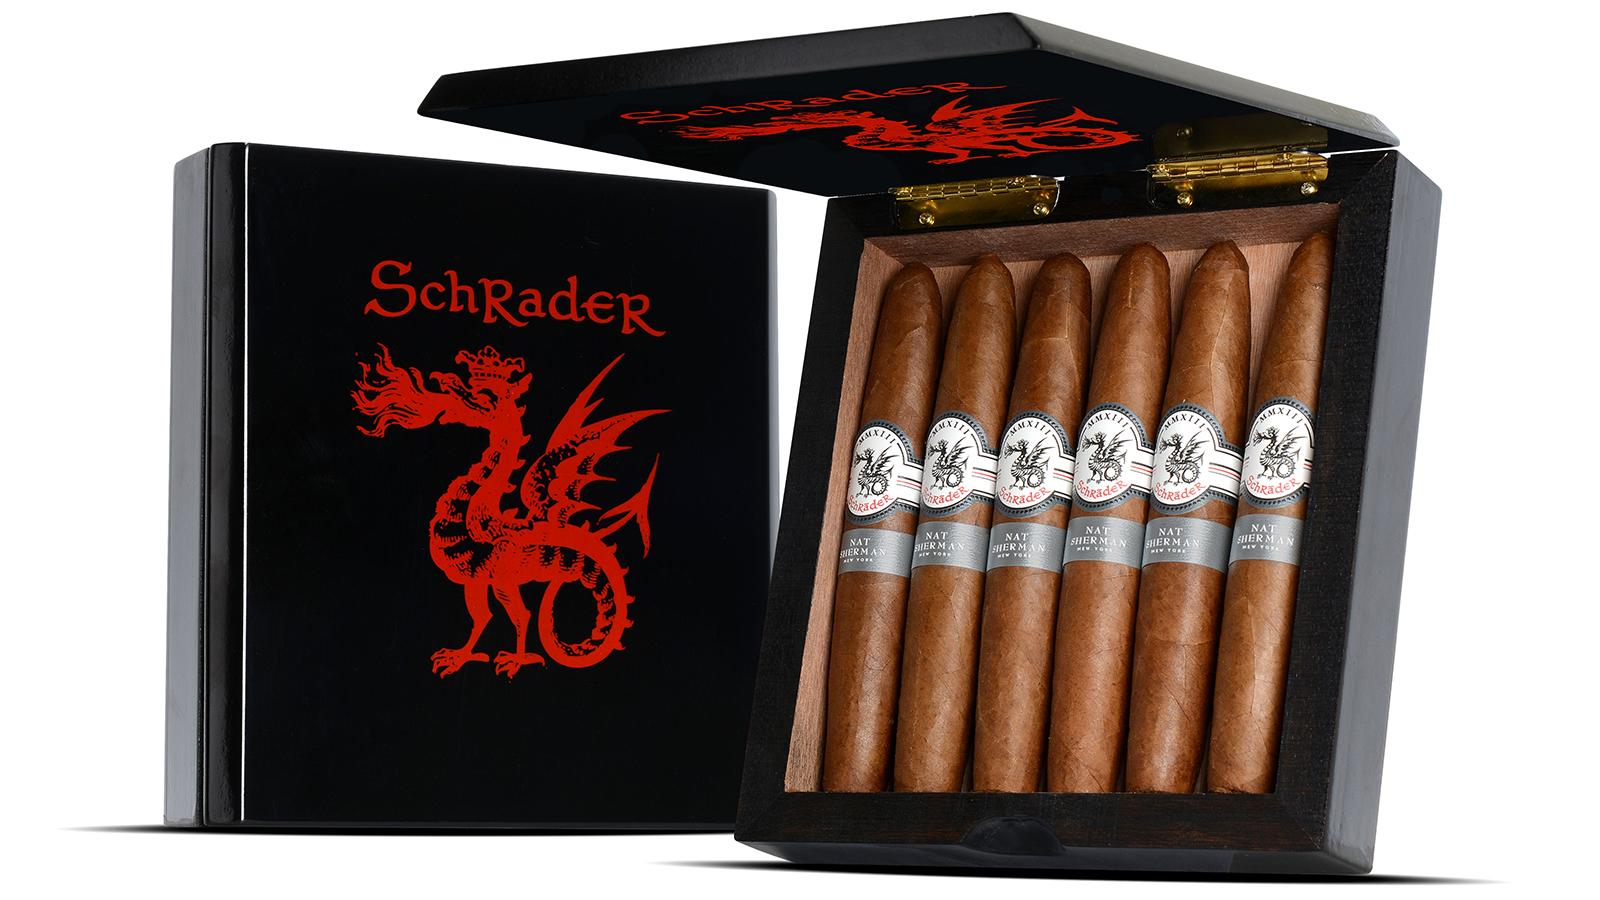 Napa Winemaker Releasing Second Cigar: Schrader MMXIII